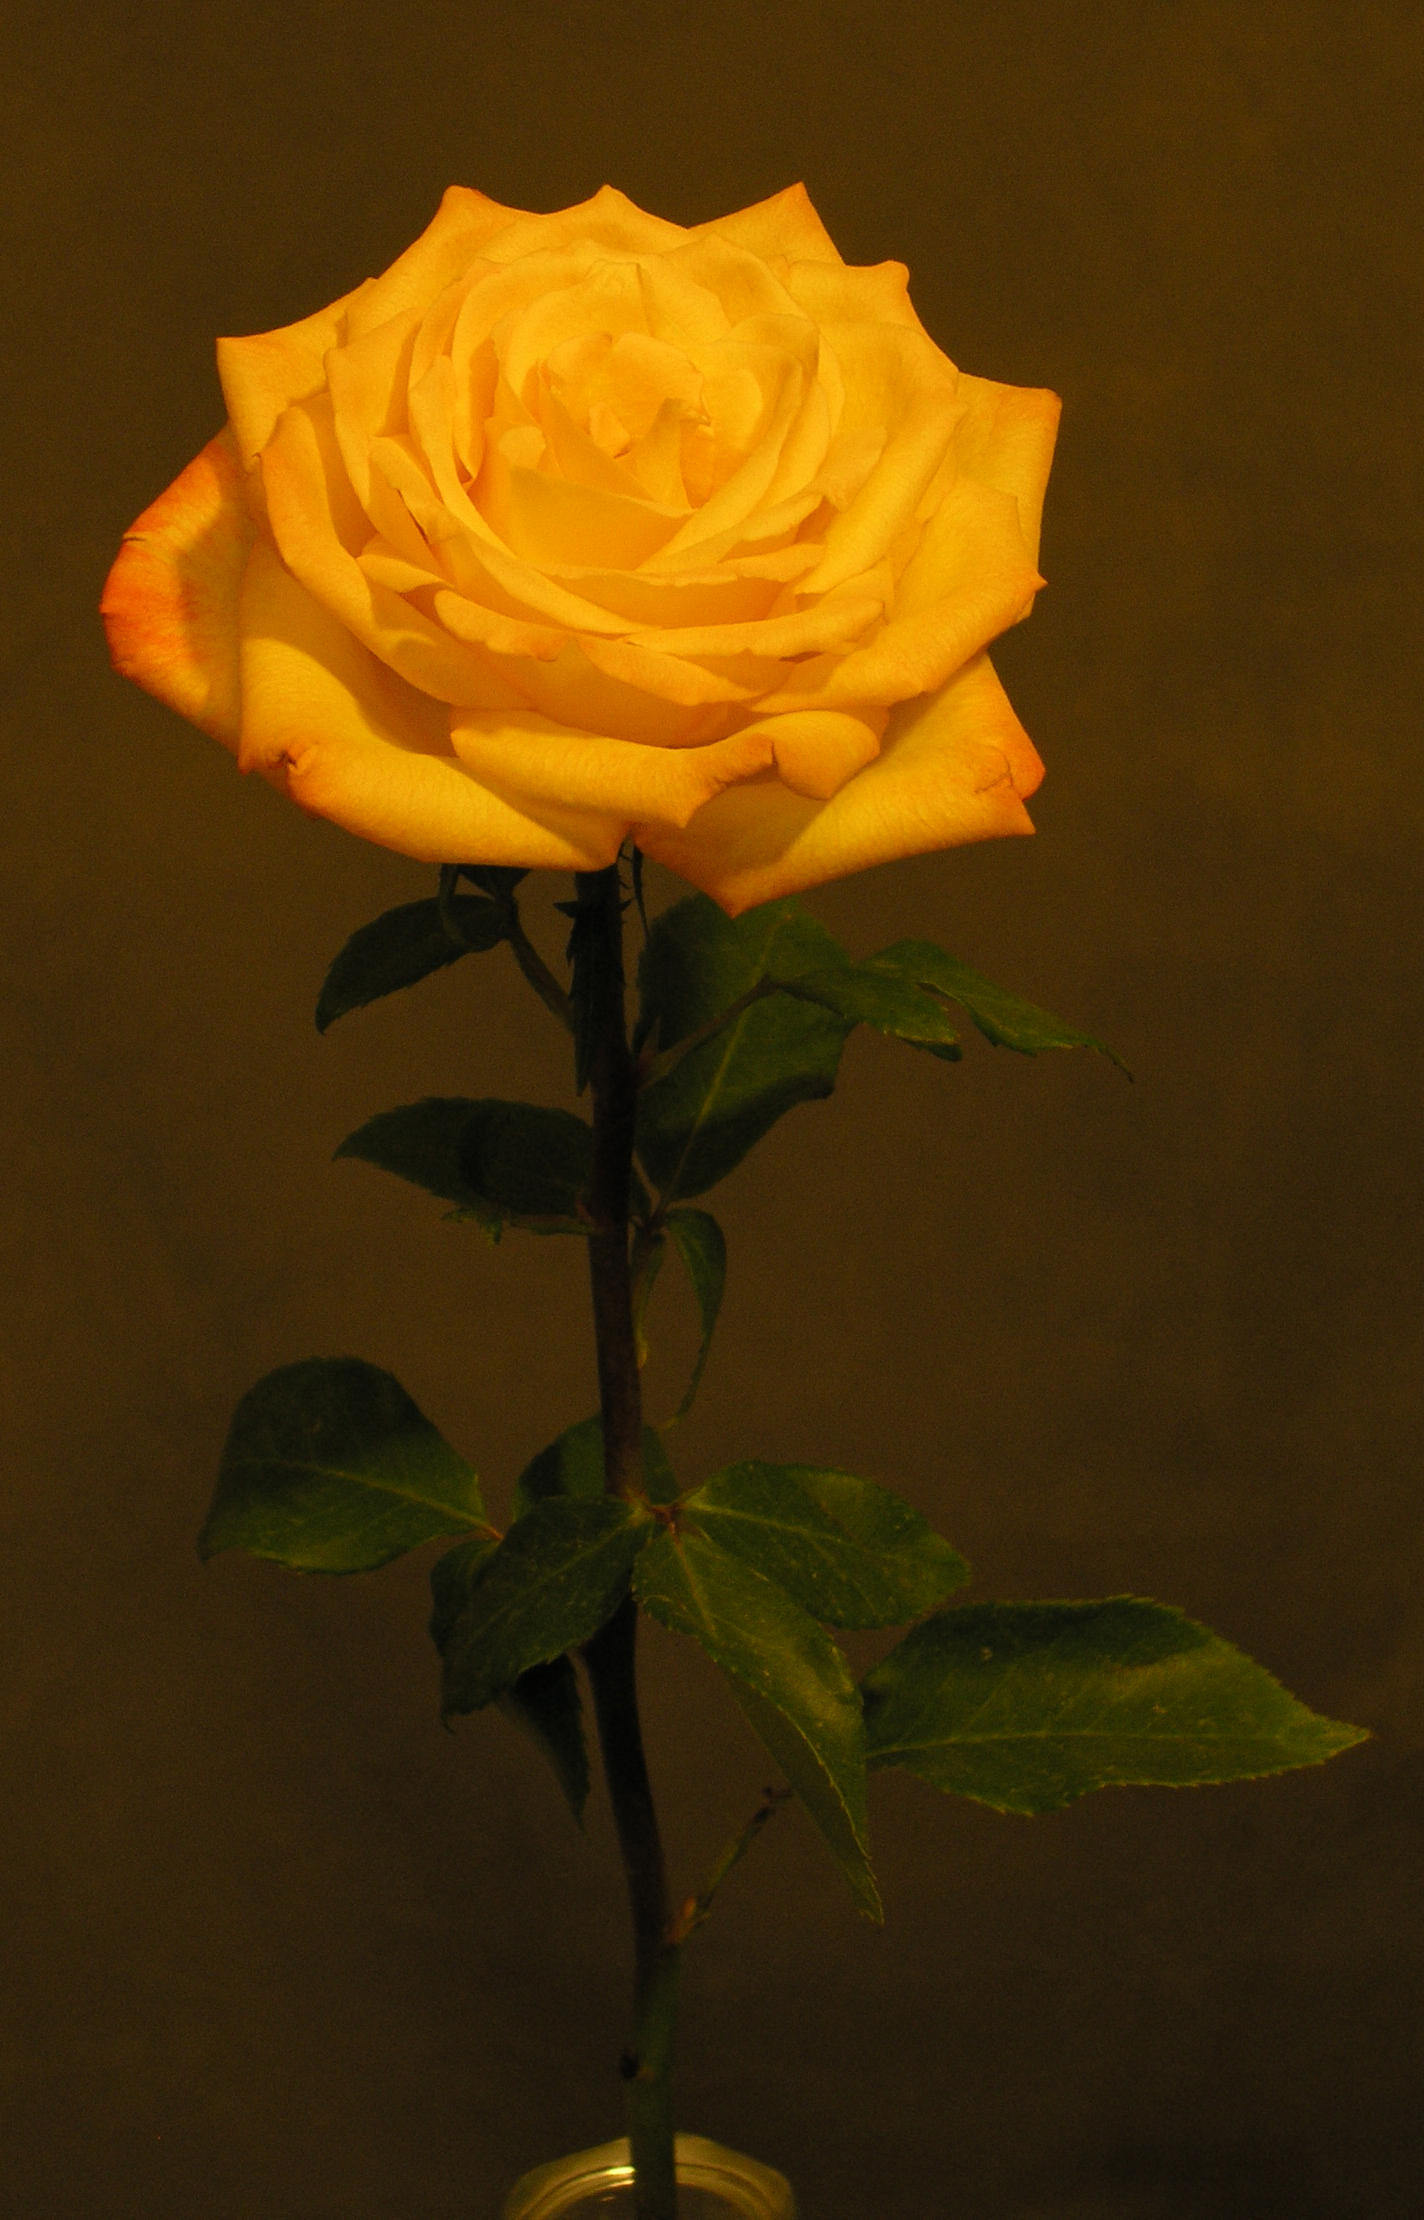 Gold roses 06 by lockstock